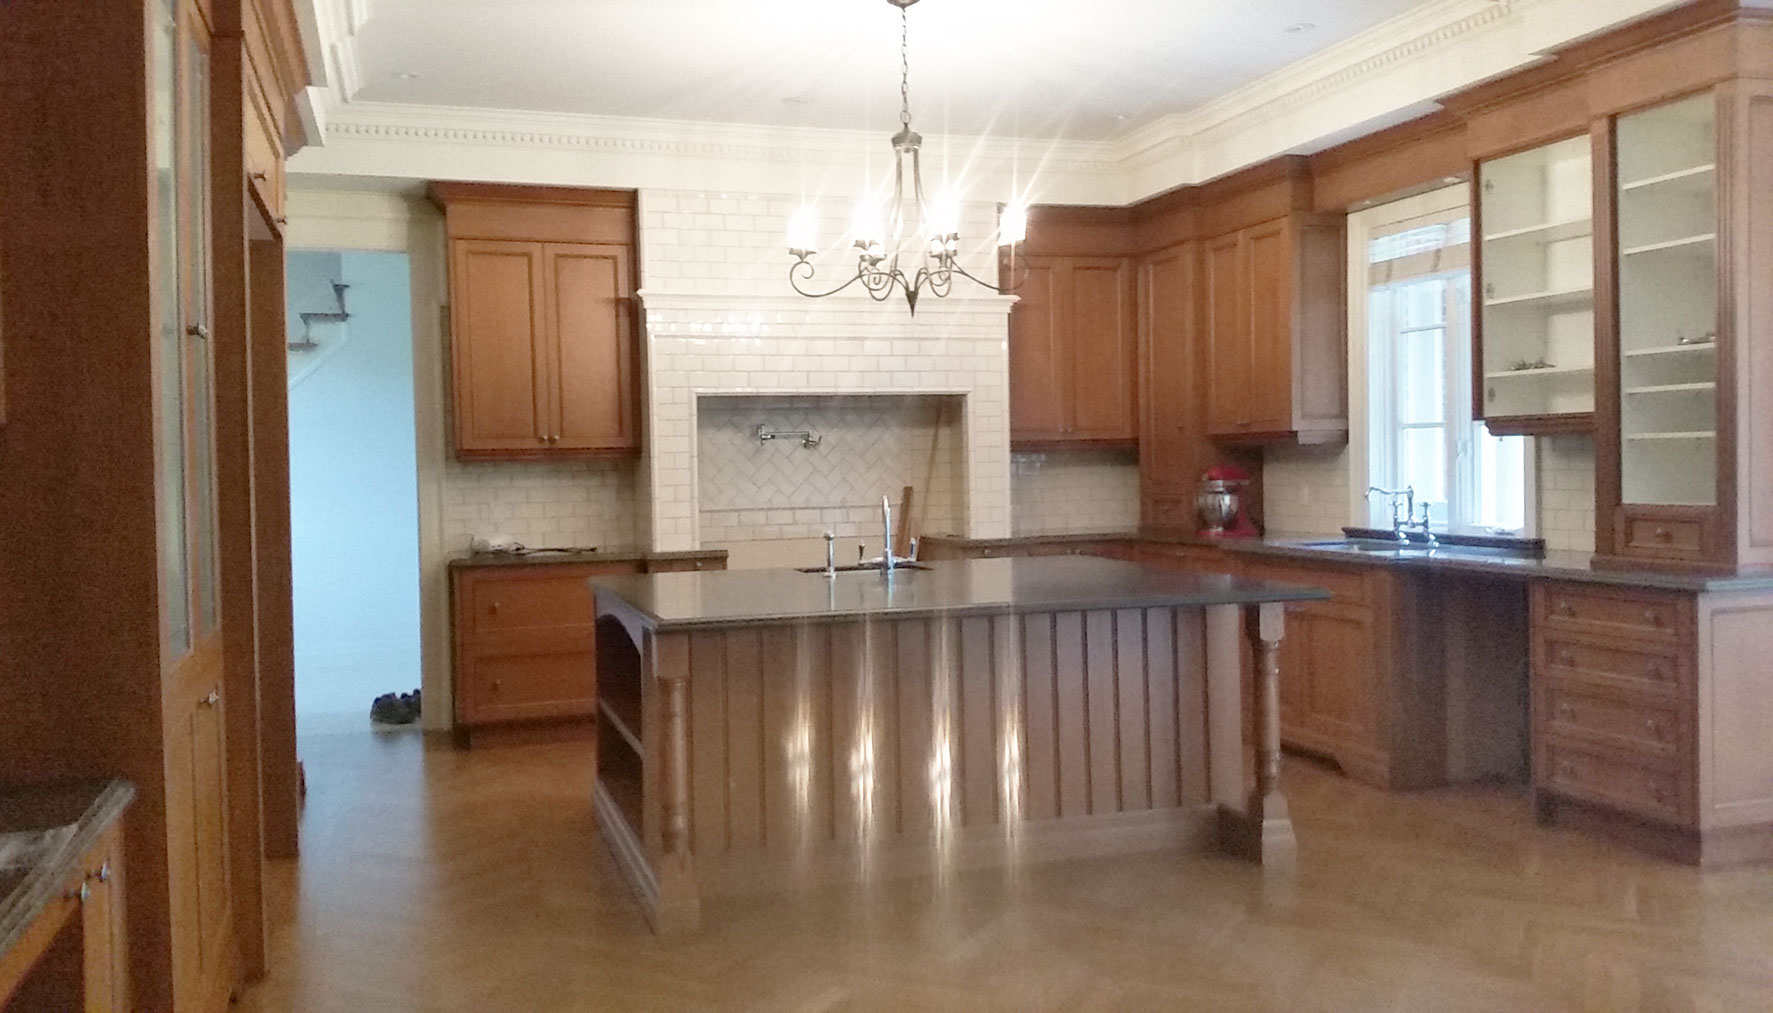 Norcliffe-Kitchen-Cabinet-Refinishing_before_c.jpg